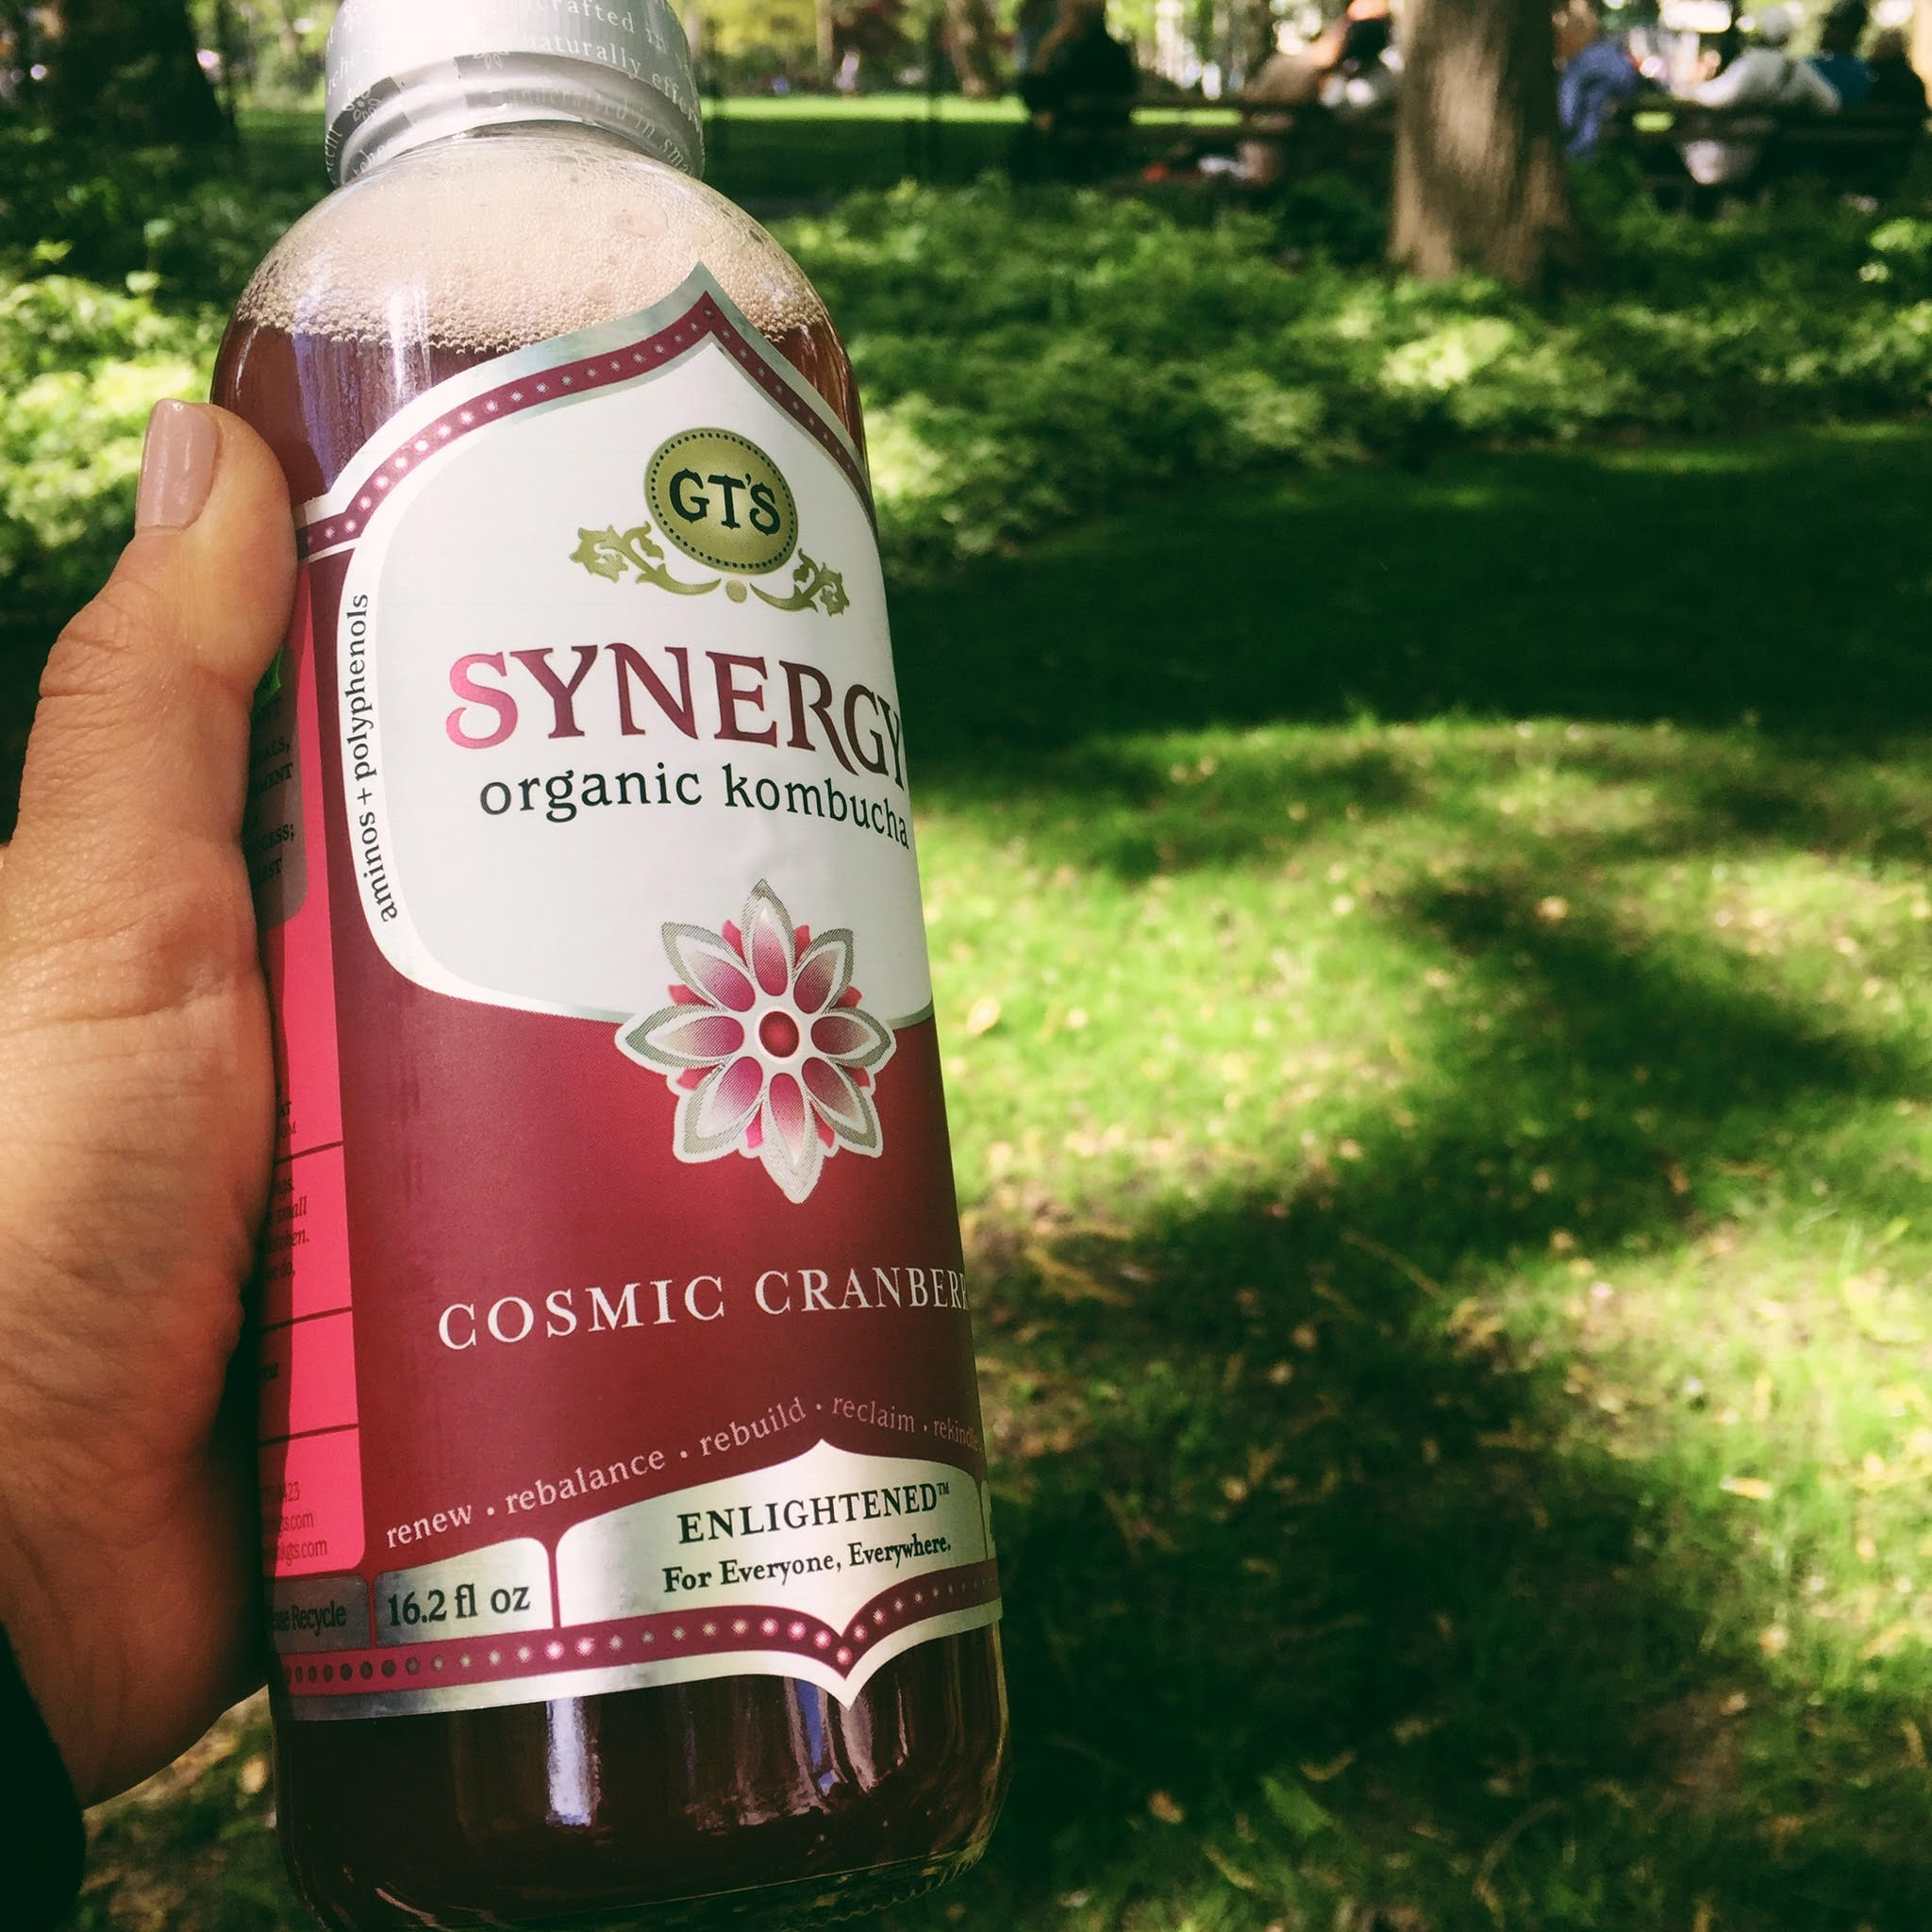 Kombucha Date: A Look Back at May 2017